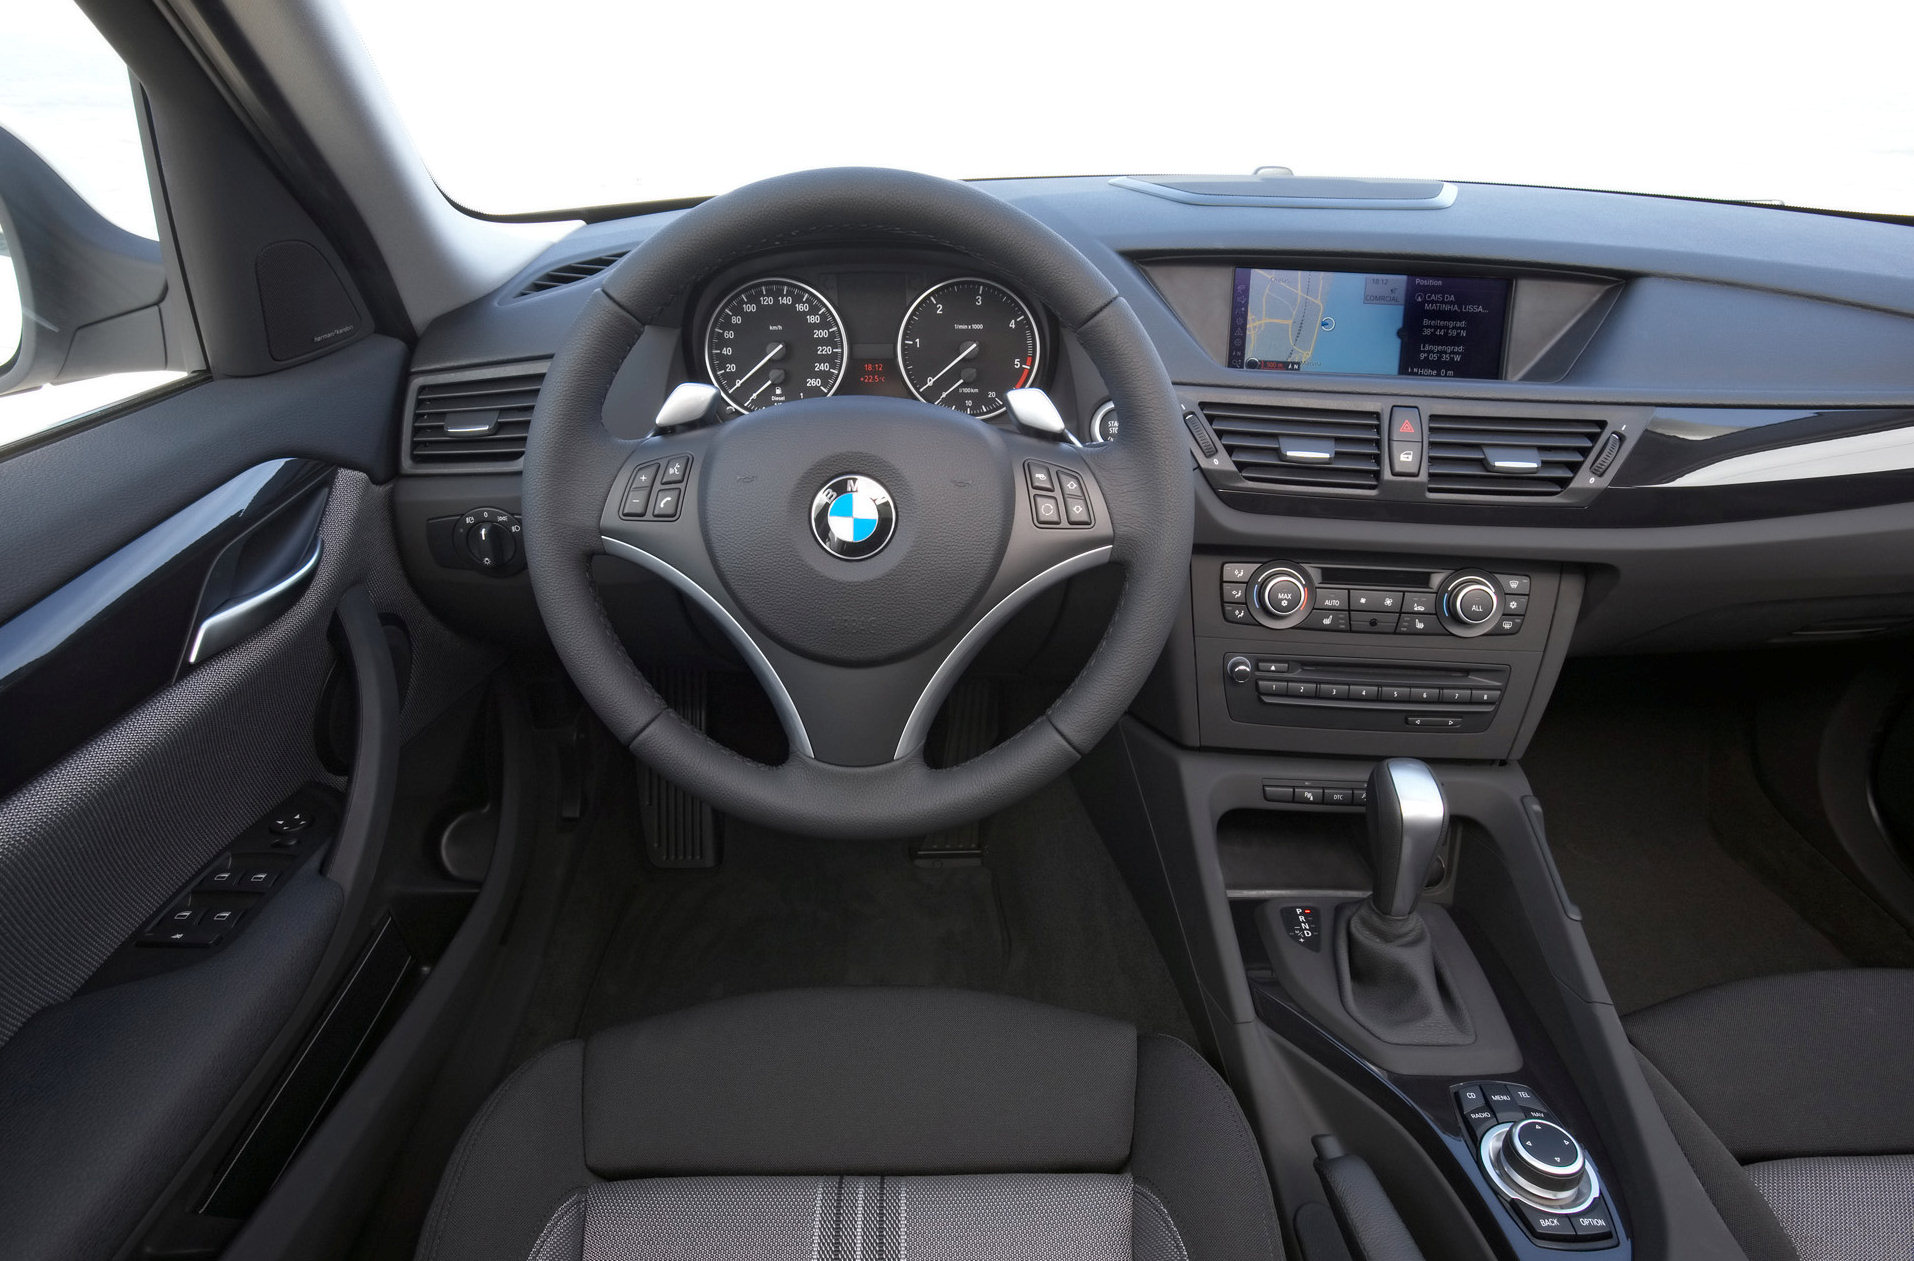 Intrieur 3 3 bmw x1 2010 for Interieur x1